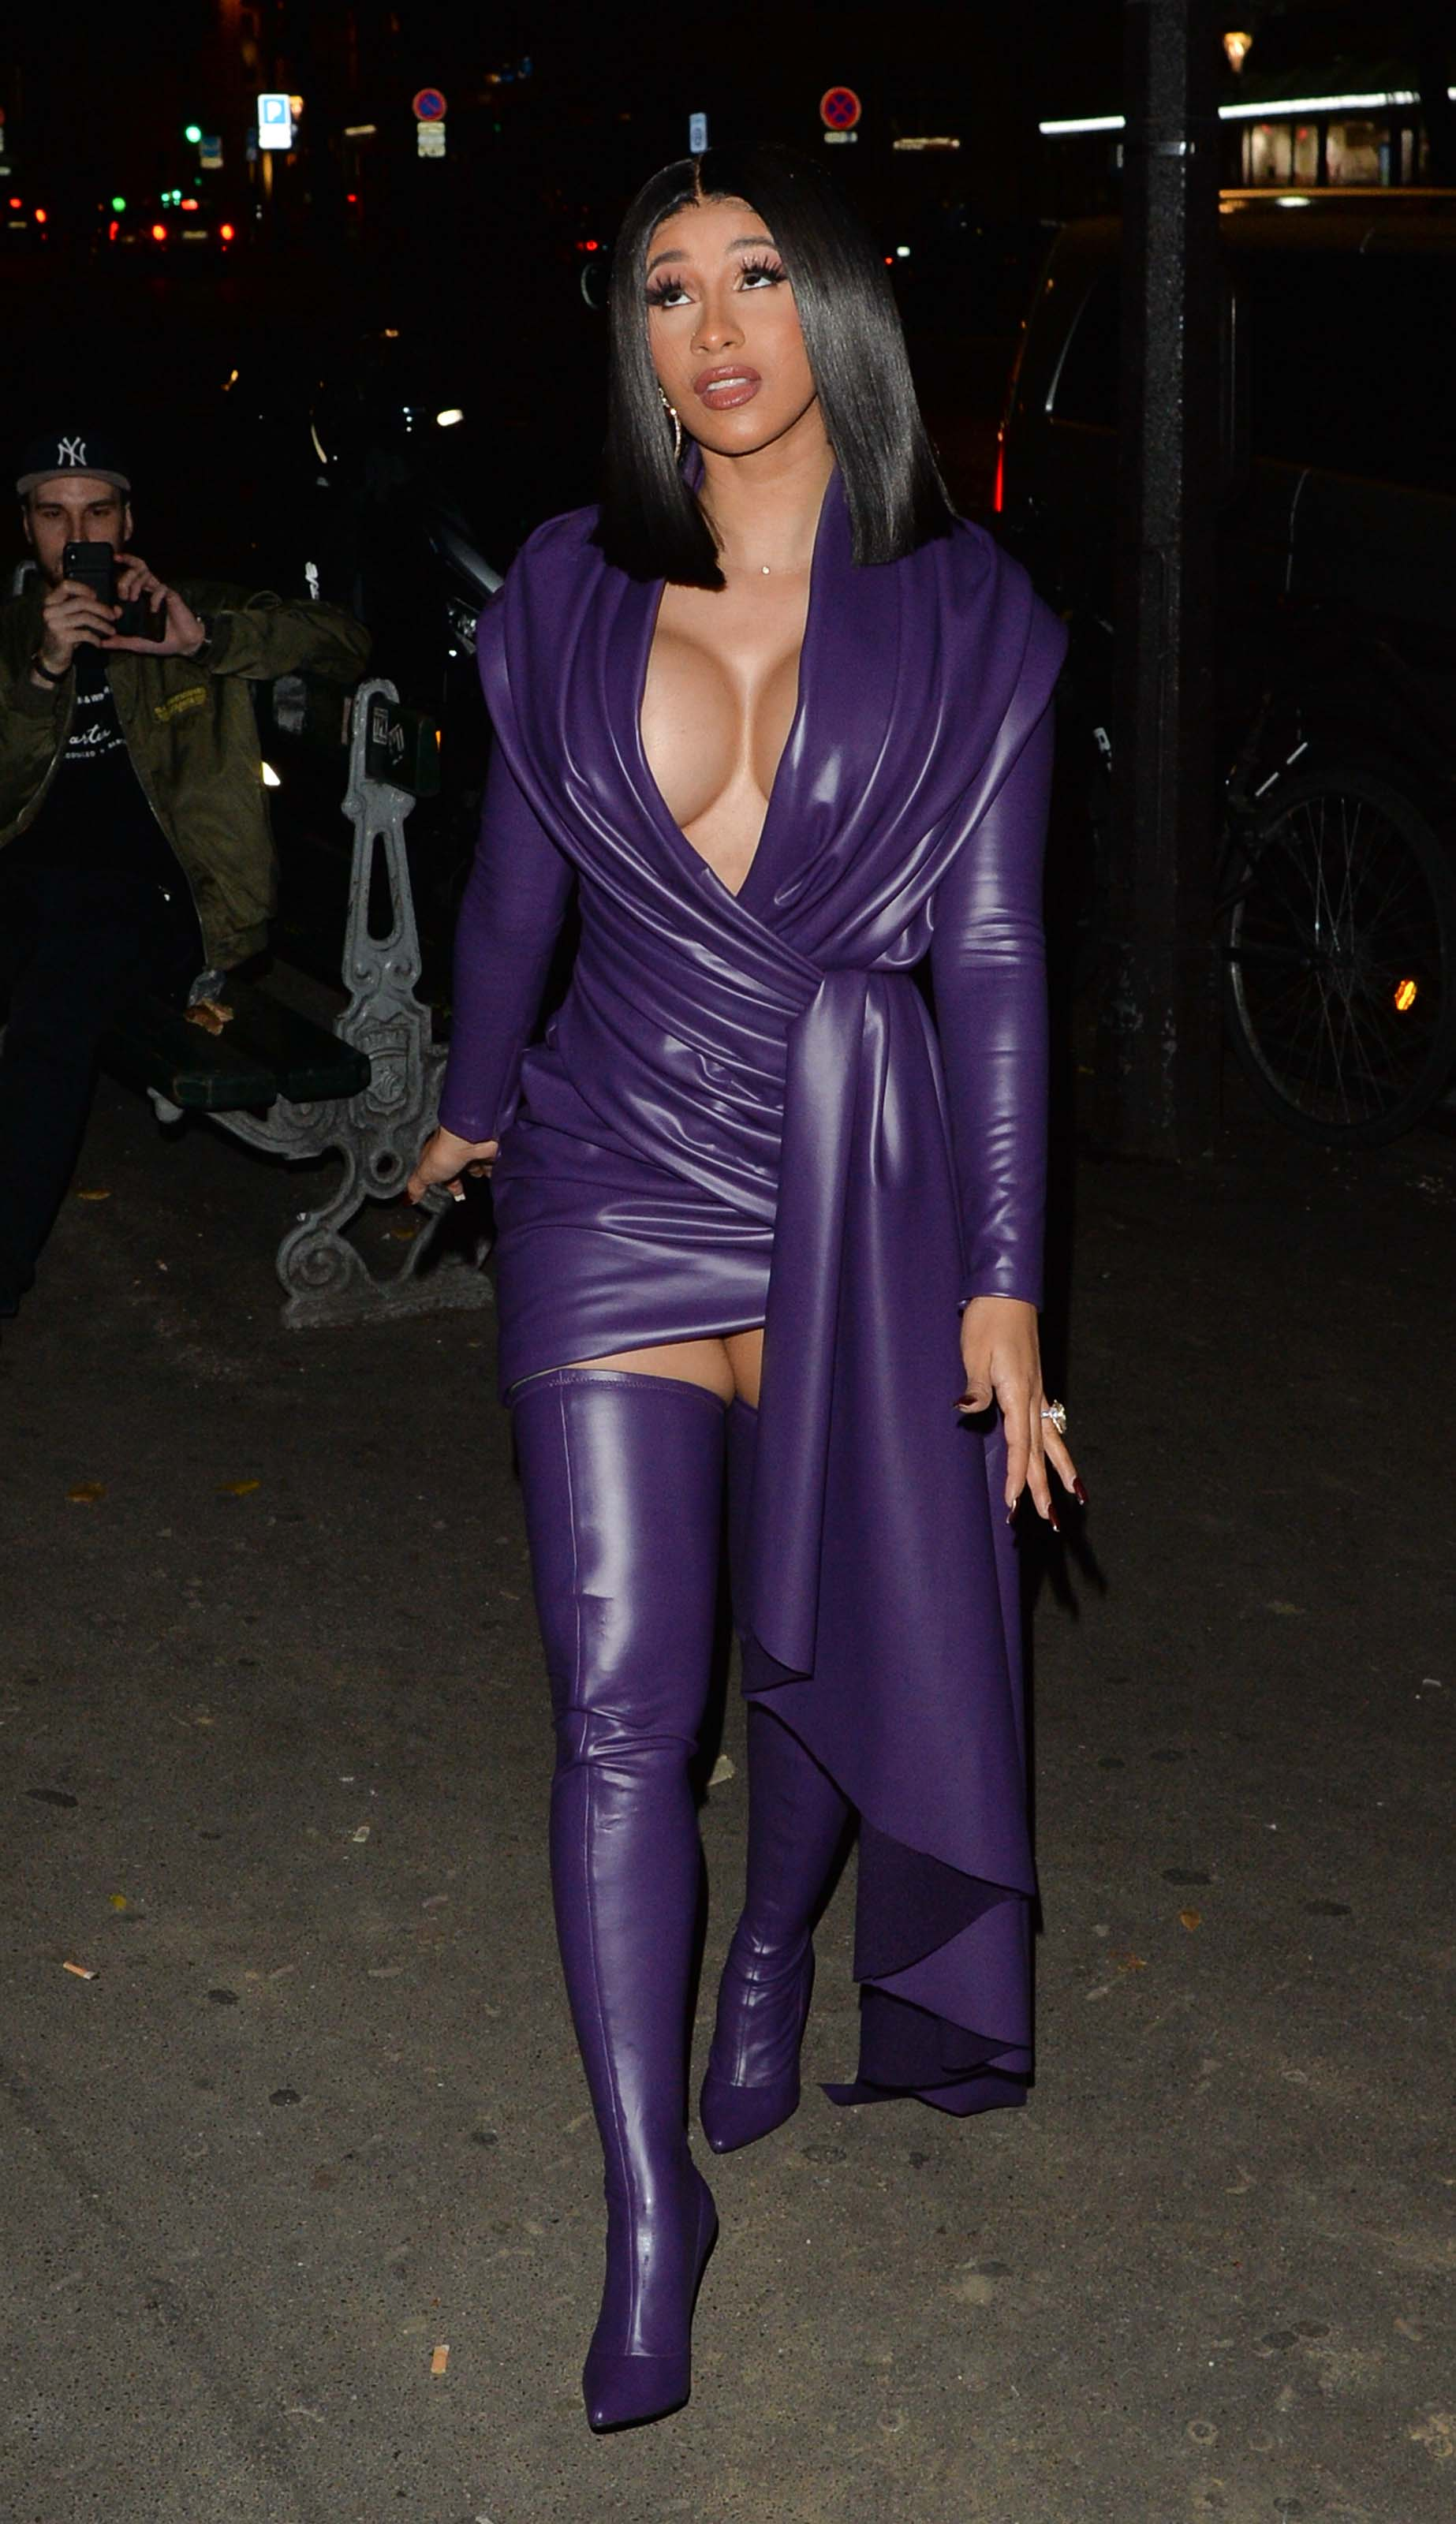 Cardi B night out in Paris